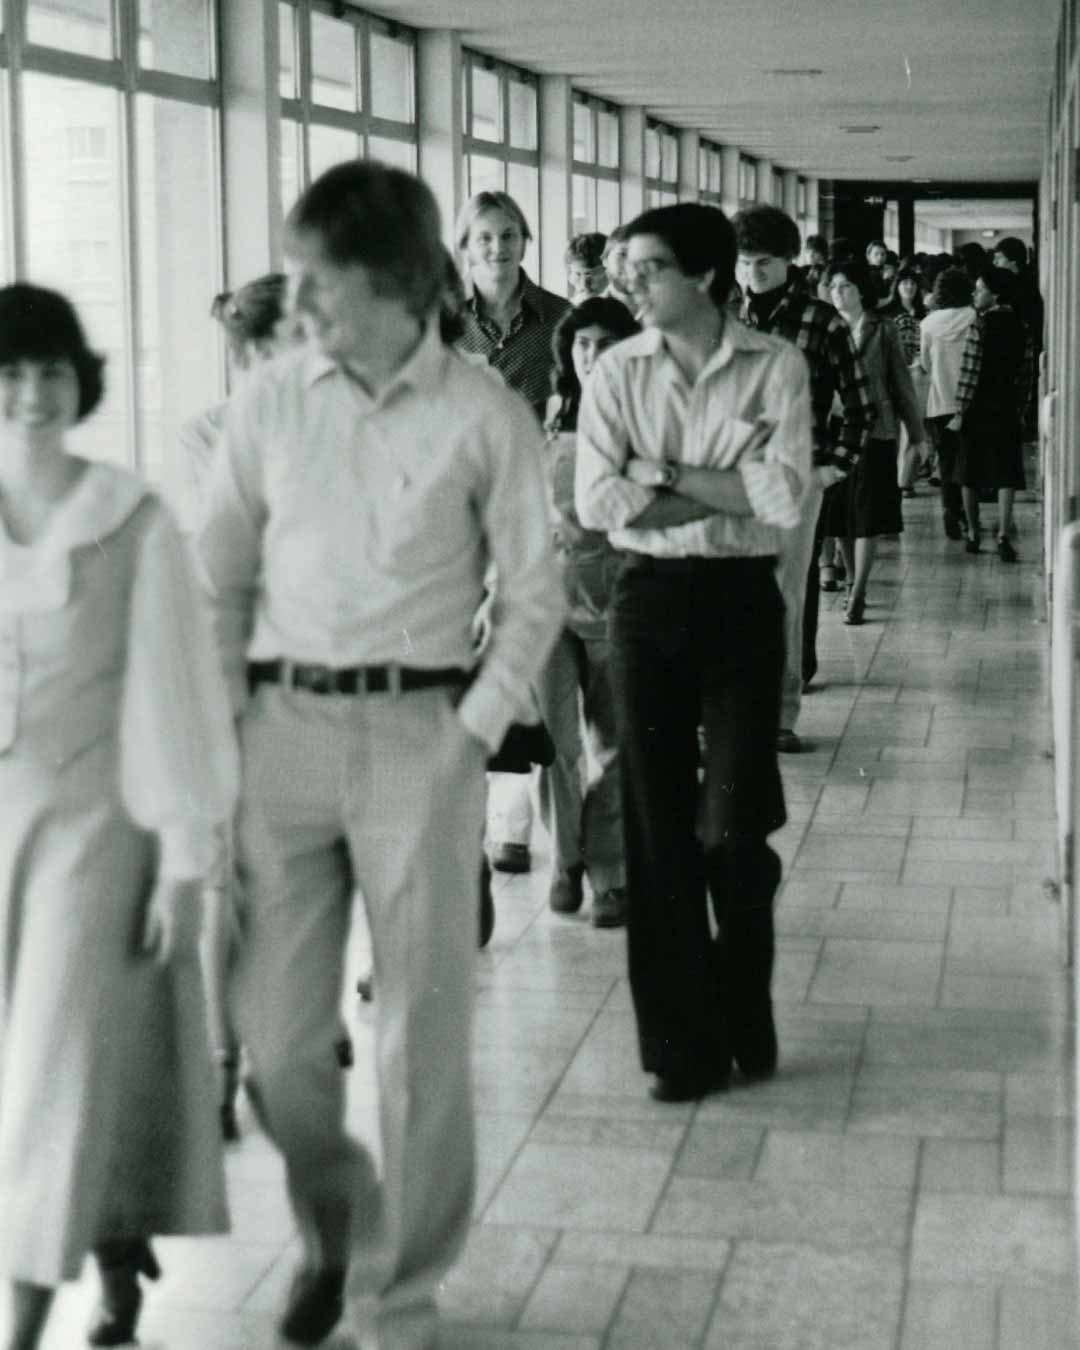 old photos of students lobby online in crown college